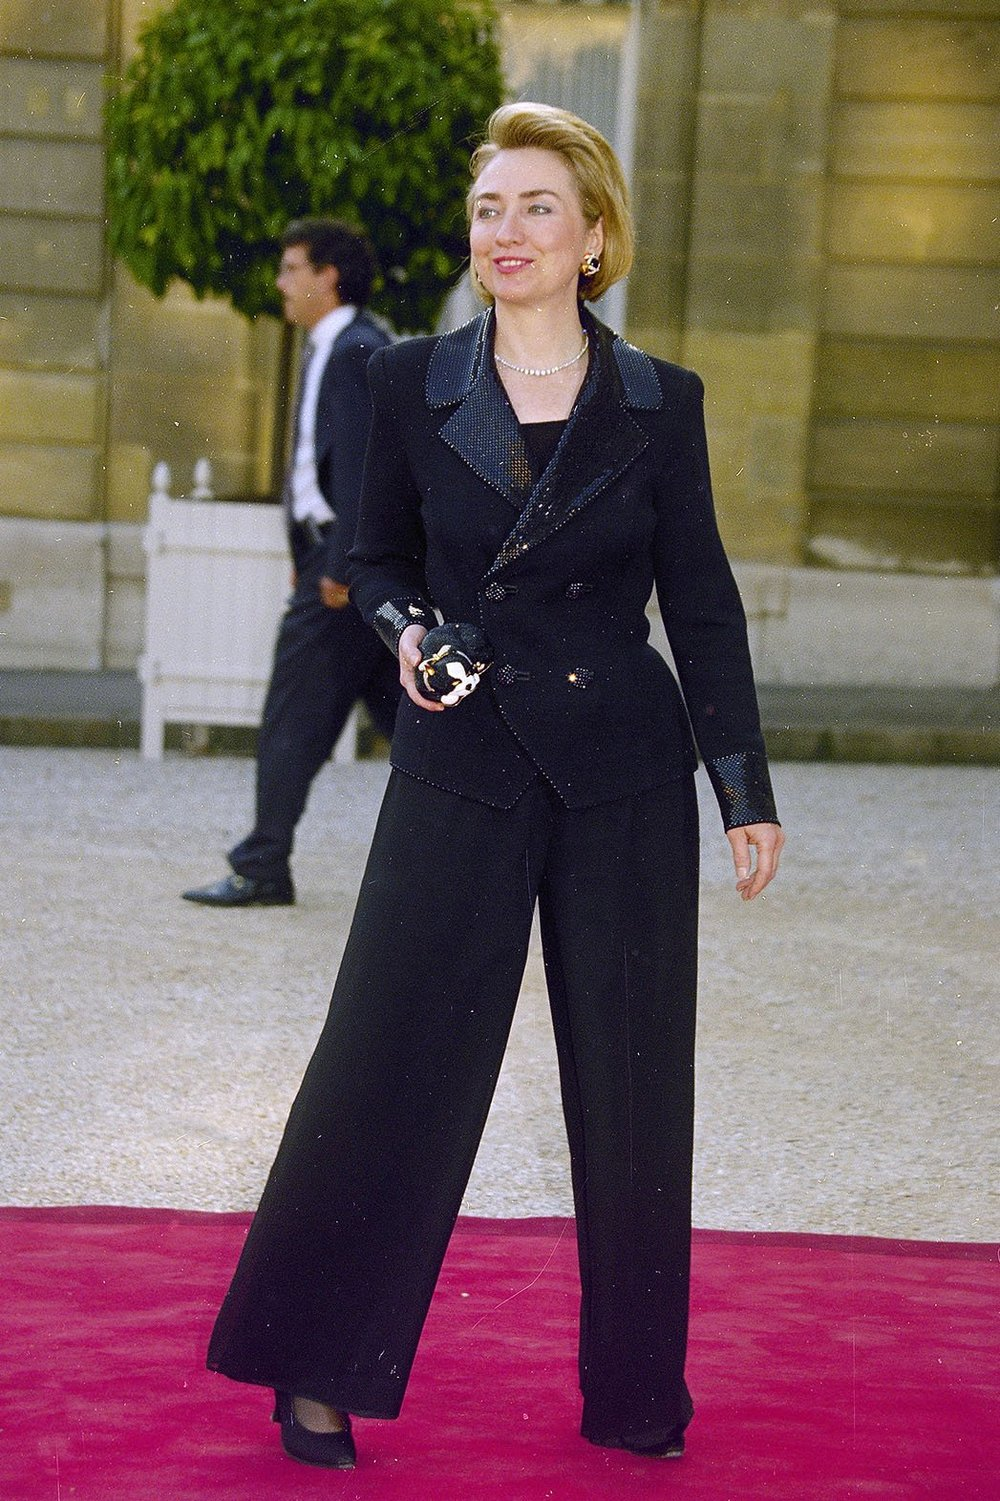 2. 1994- Slaying in Sequins       Clinton rocks the red carpet in Paris. Note the cat clutch and flared pant legs.